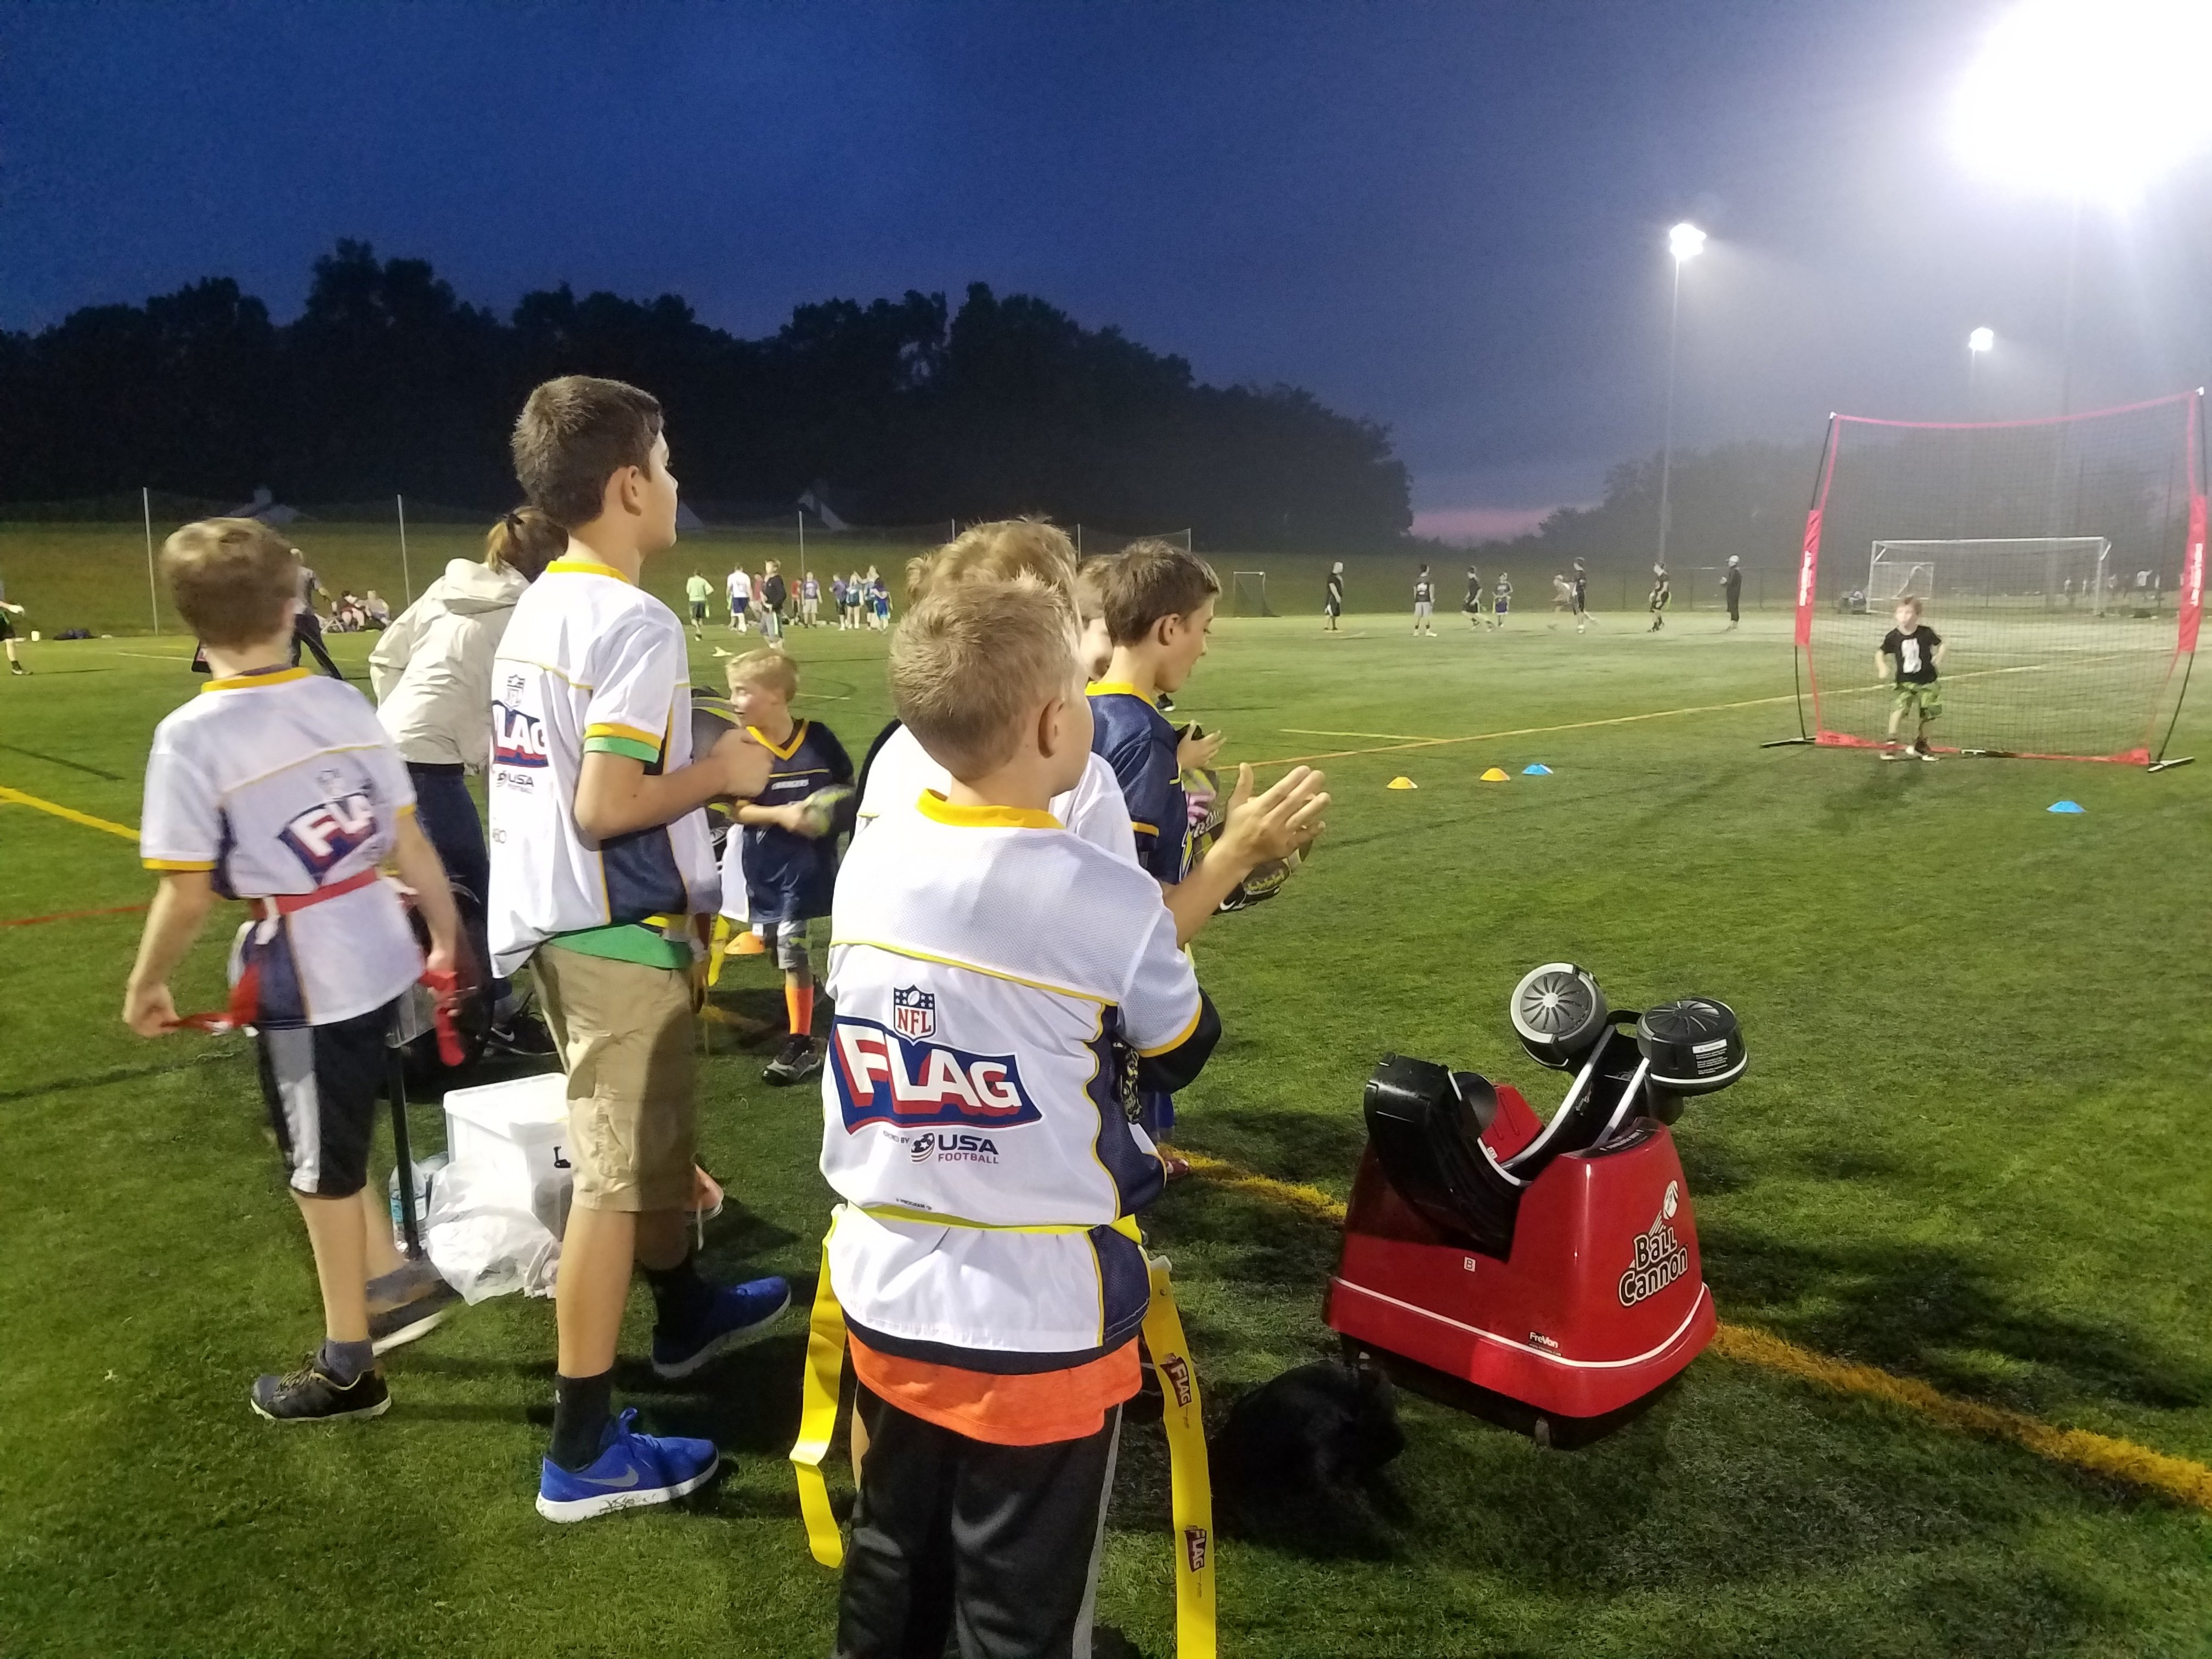 Ball Cannon at NFL Flag Football Practice